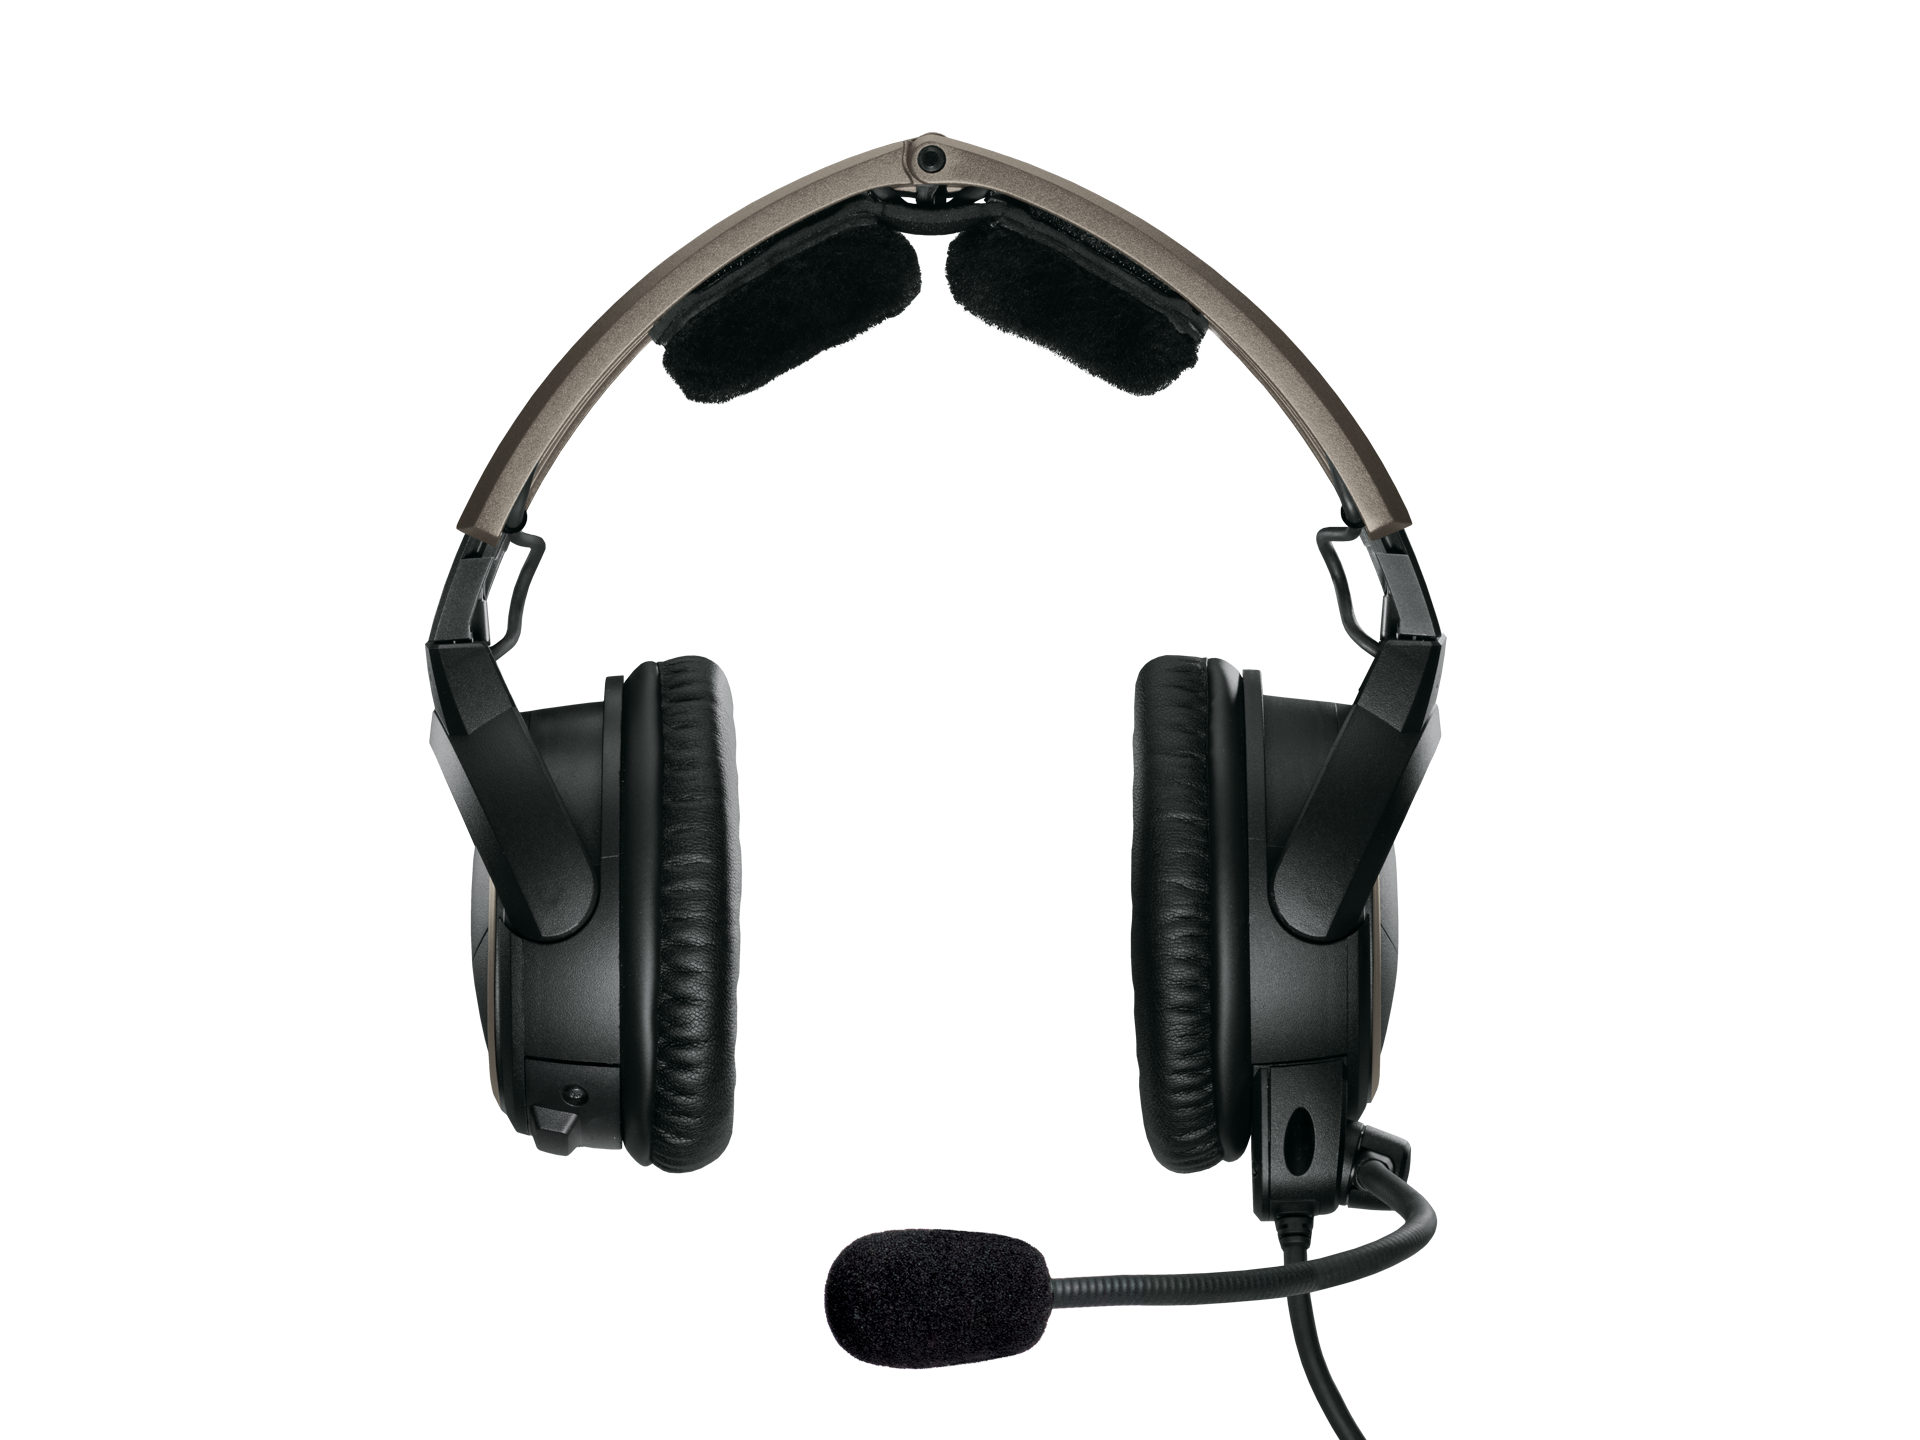 Bose A20 Headset with 6-pin LEMO Plug, Bluetooth, Straight Cable, Flex, Hi Imp. (324843-3040)Image Id:144820